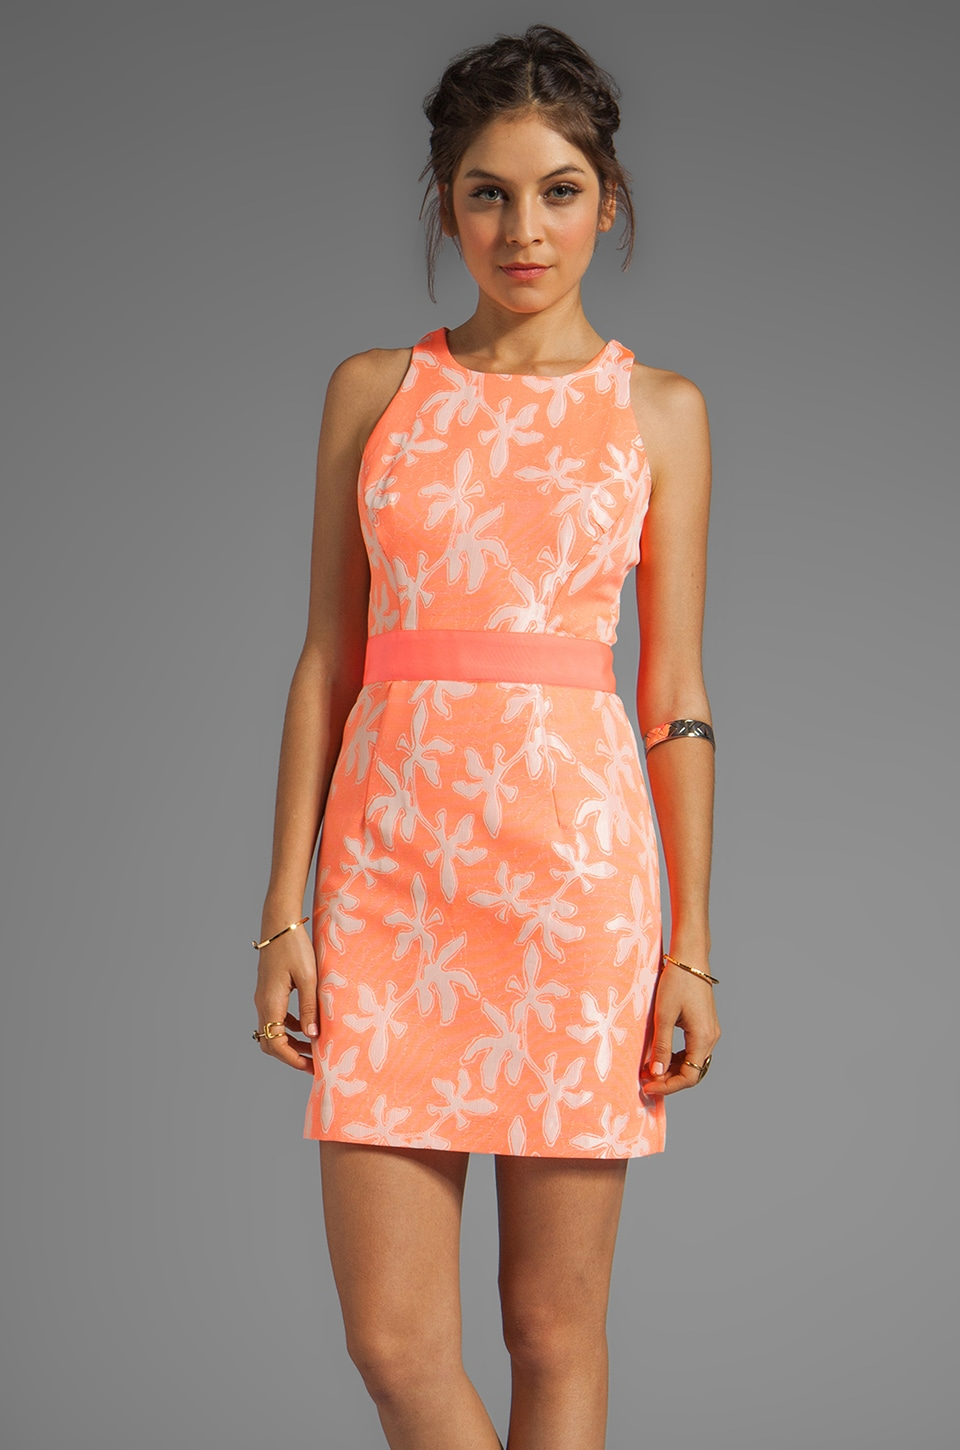 MILLY Neon Jacquard Sonya Sheath Dress in Fluo Melon